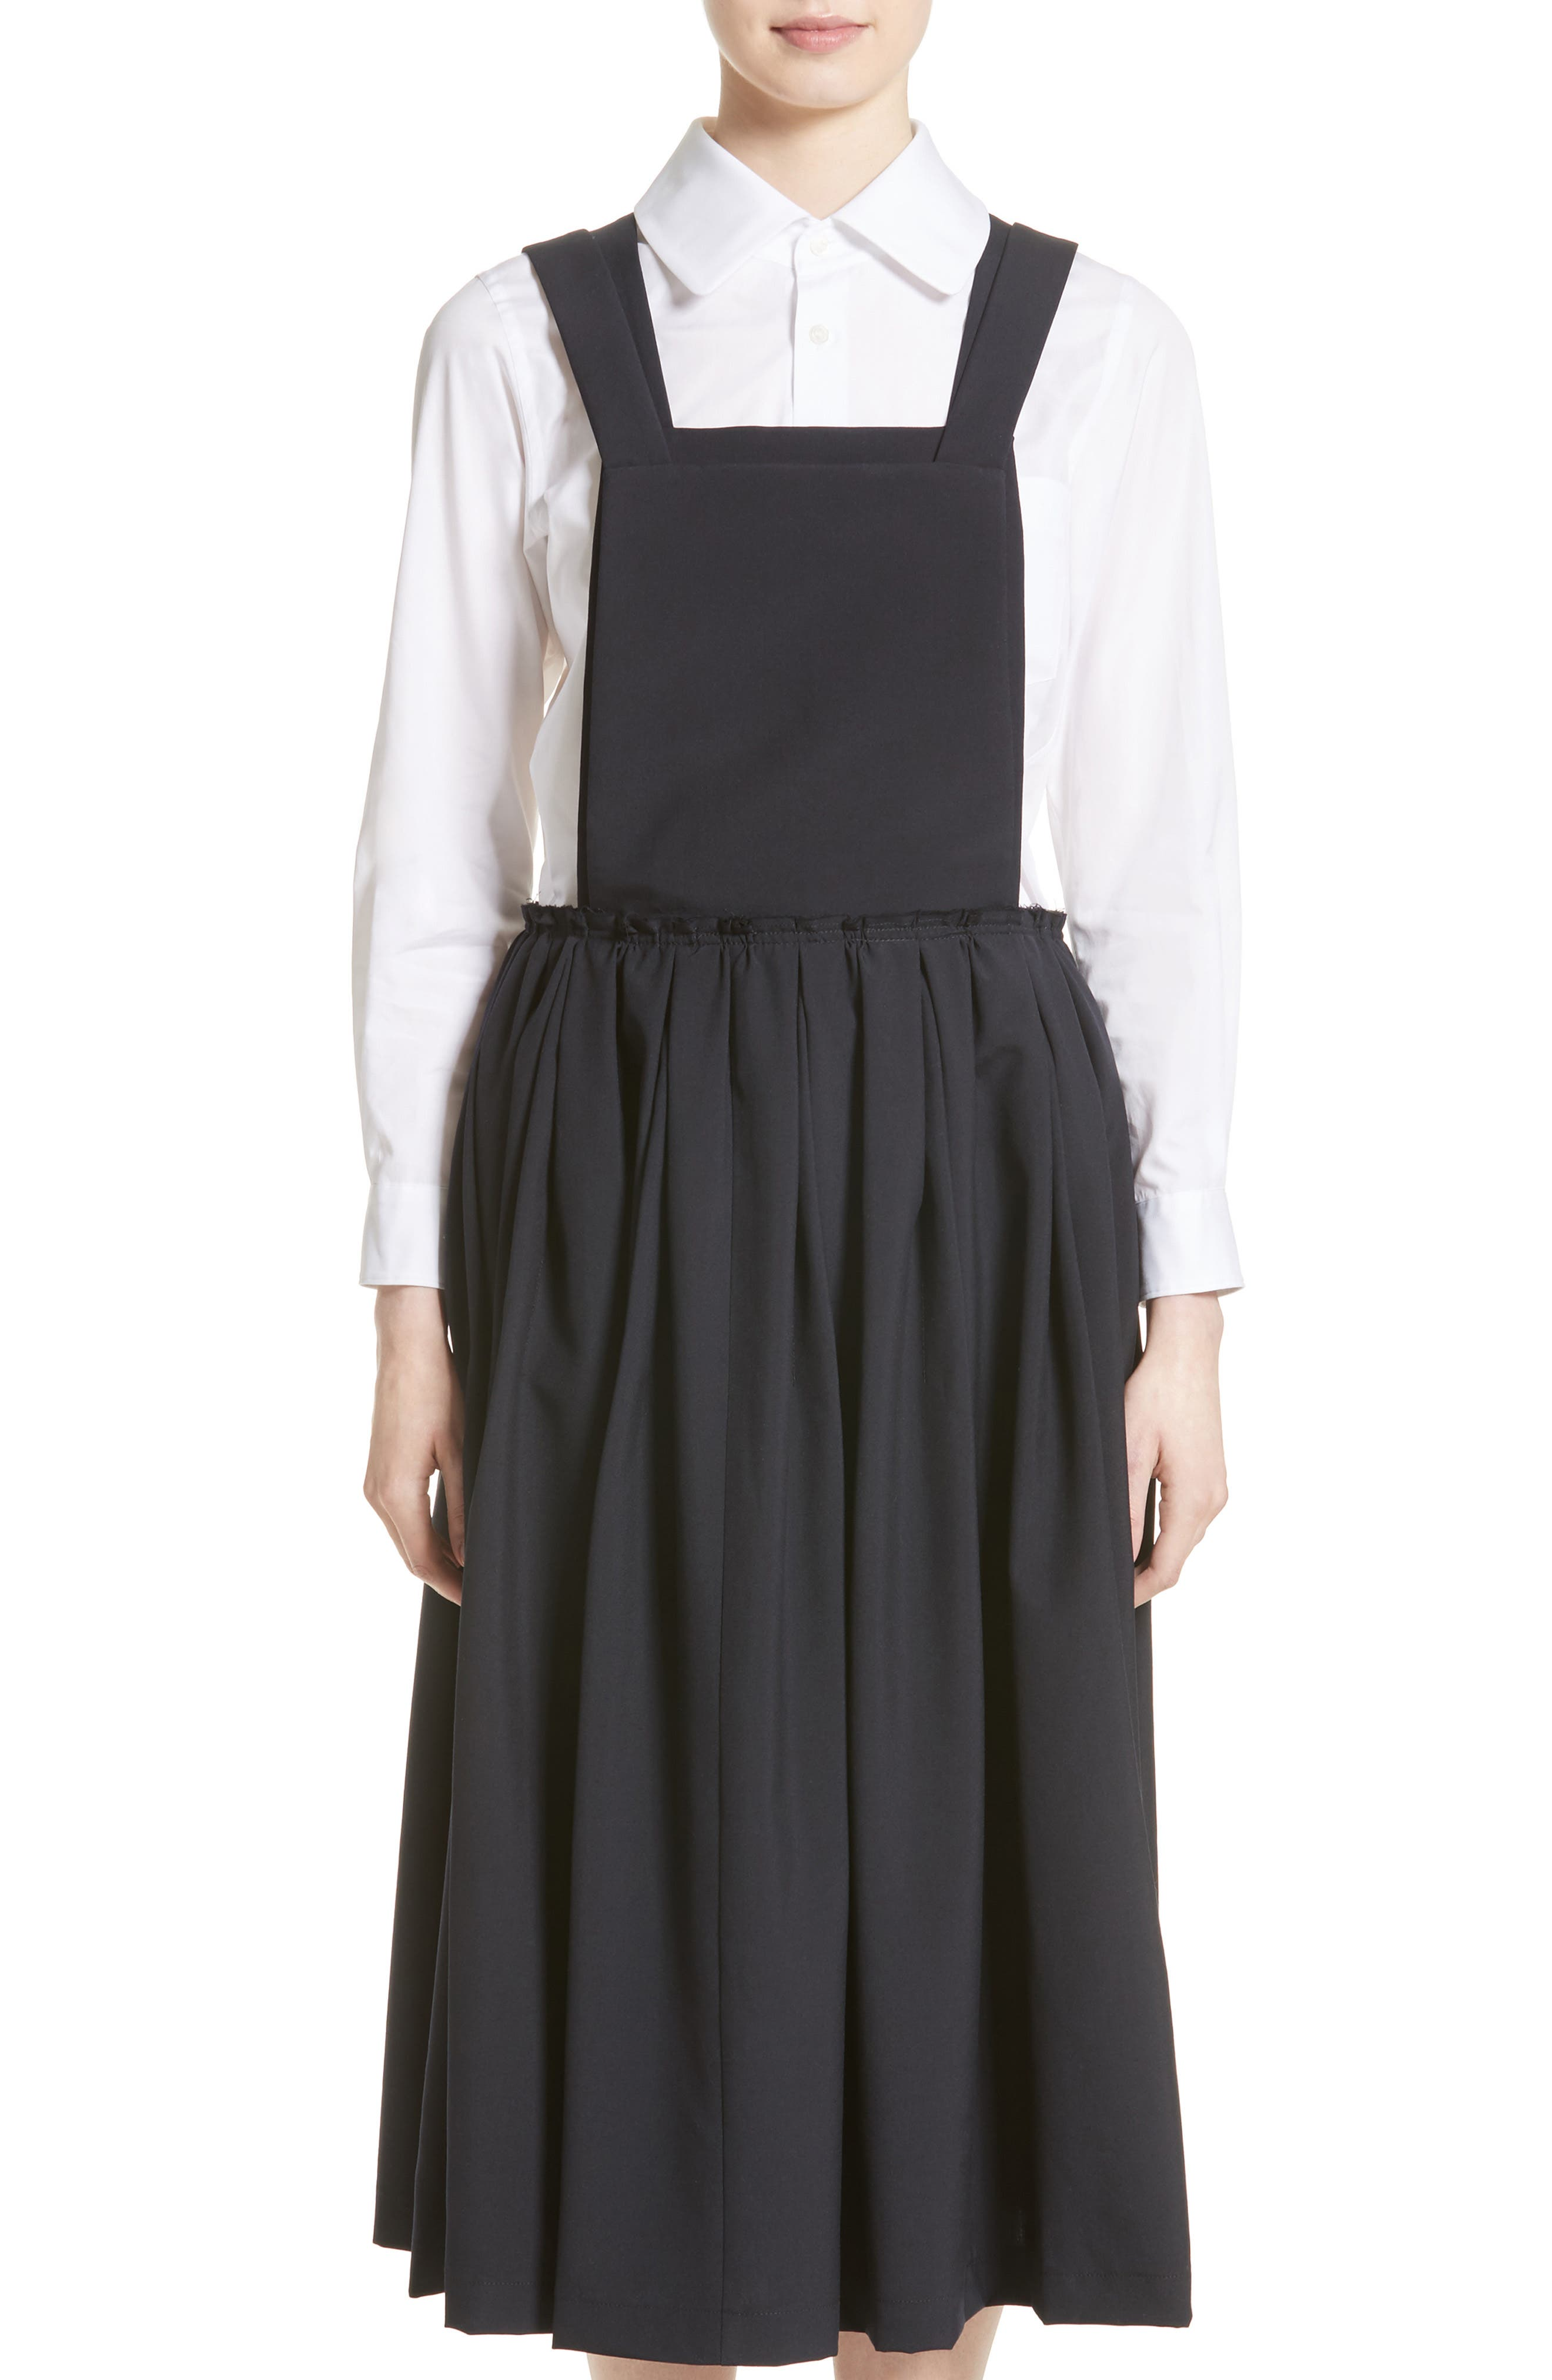 Alternate Image 1 Selected - Comme des Garçons Tropical Wool Overall Dress